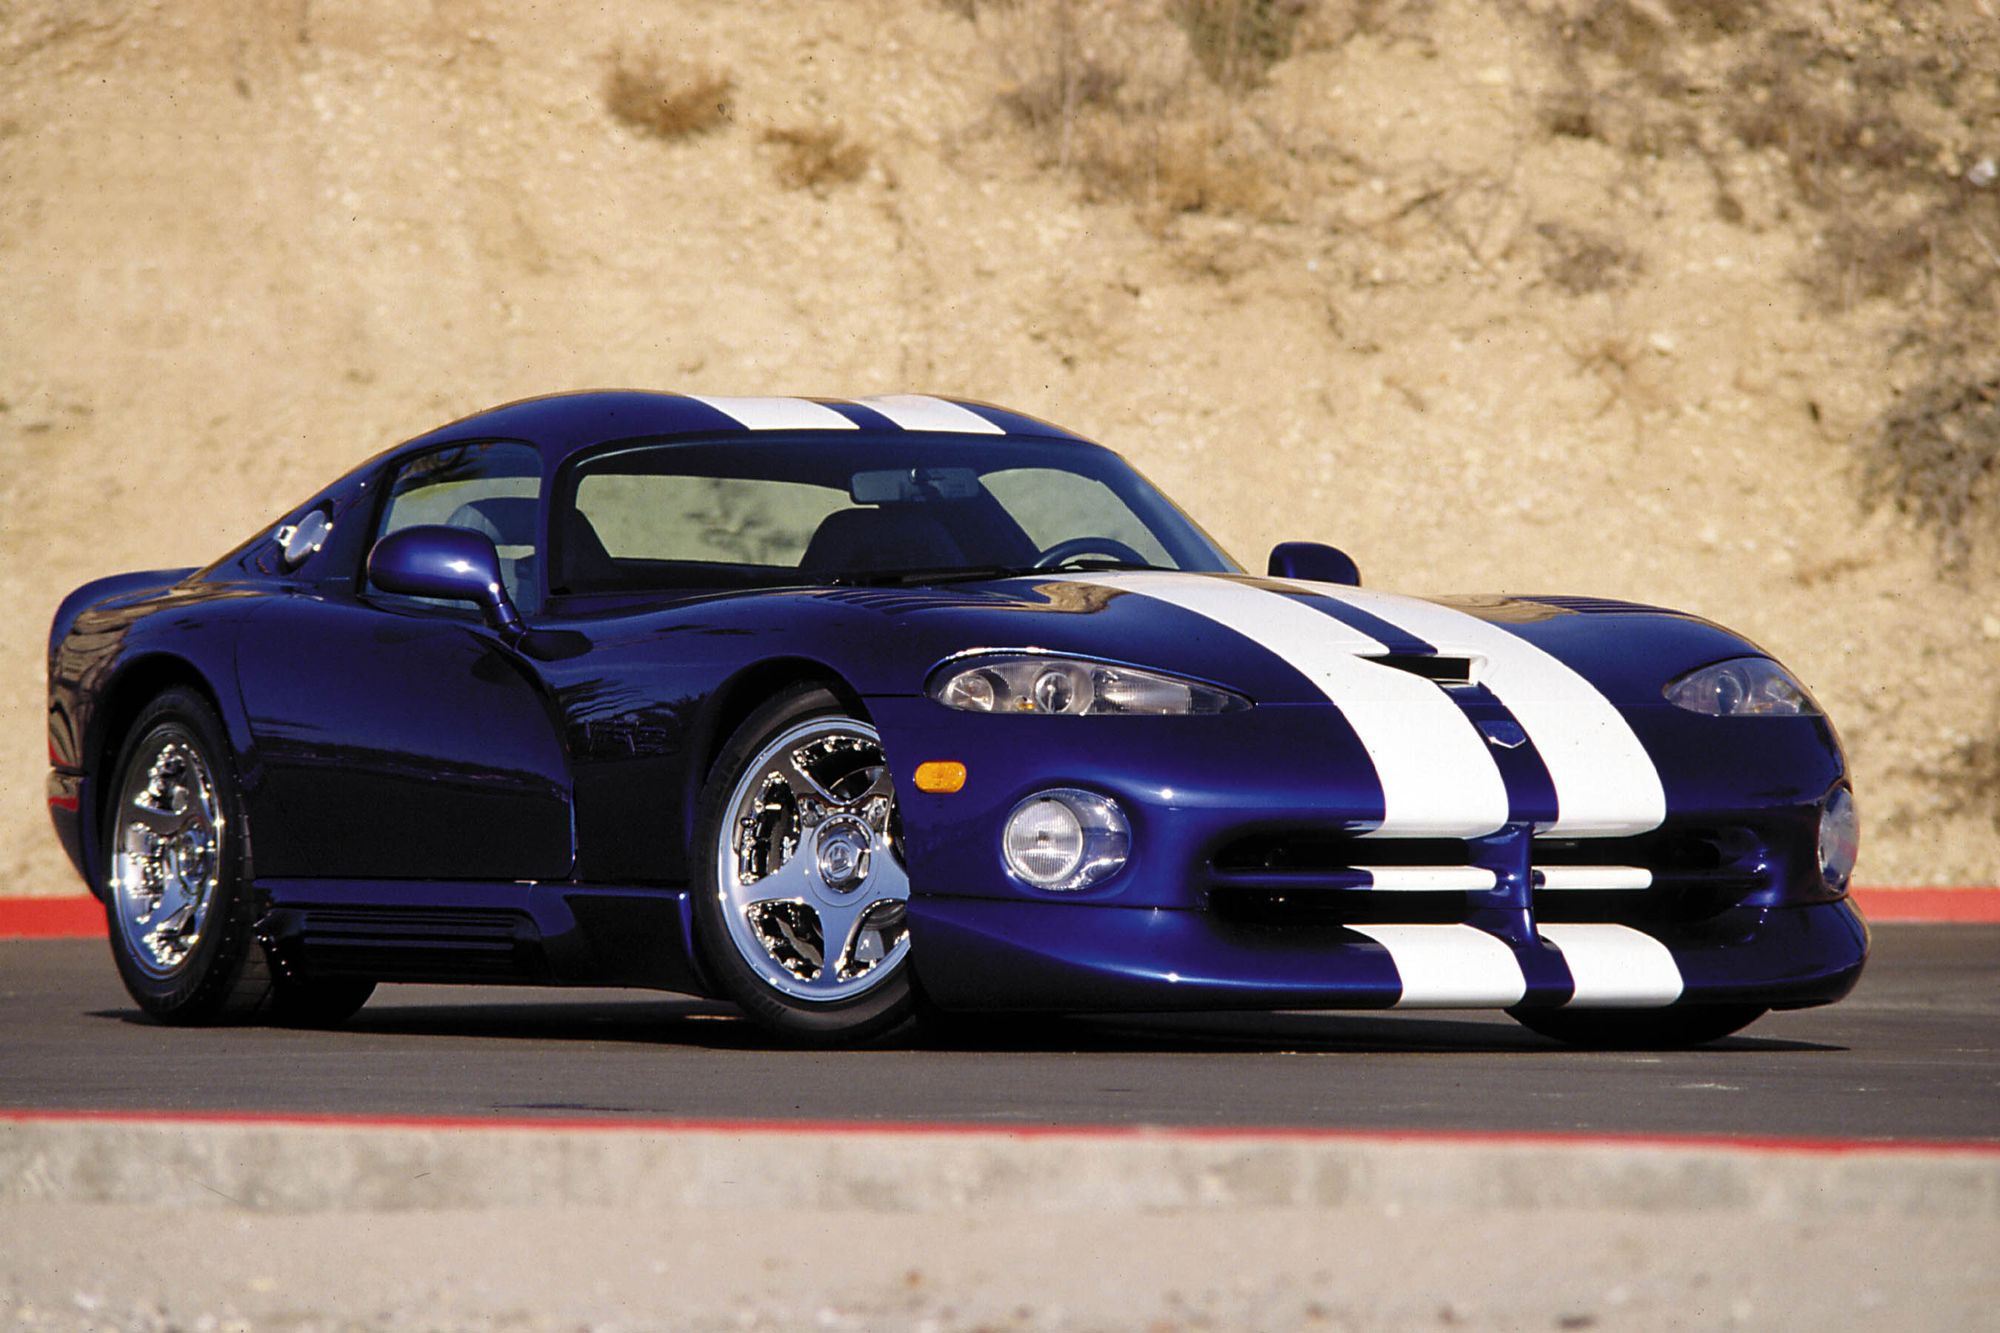 2000 Chrysler Viper #1